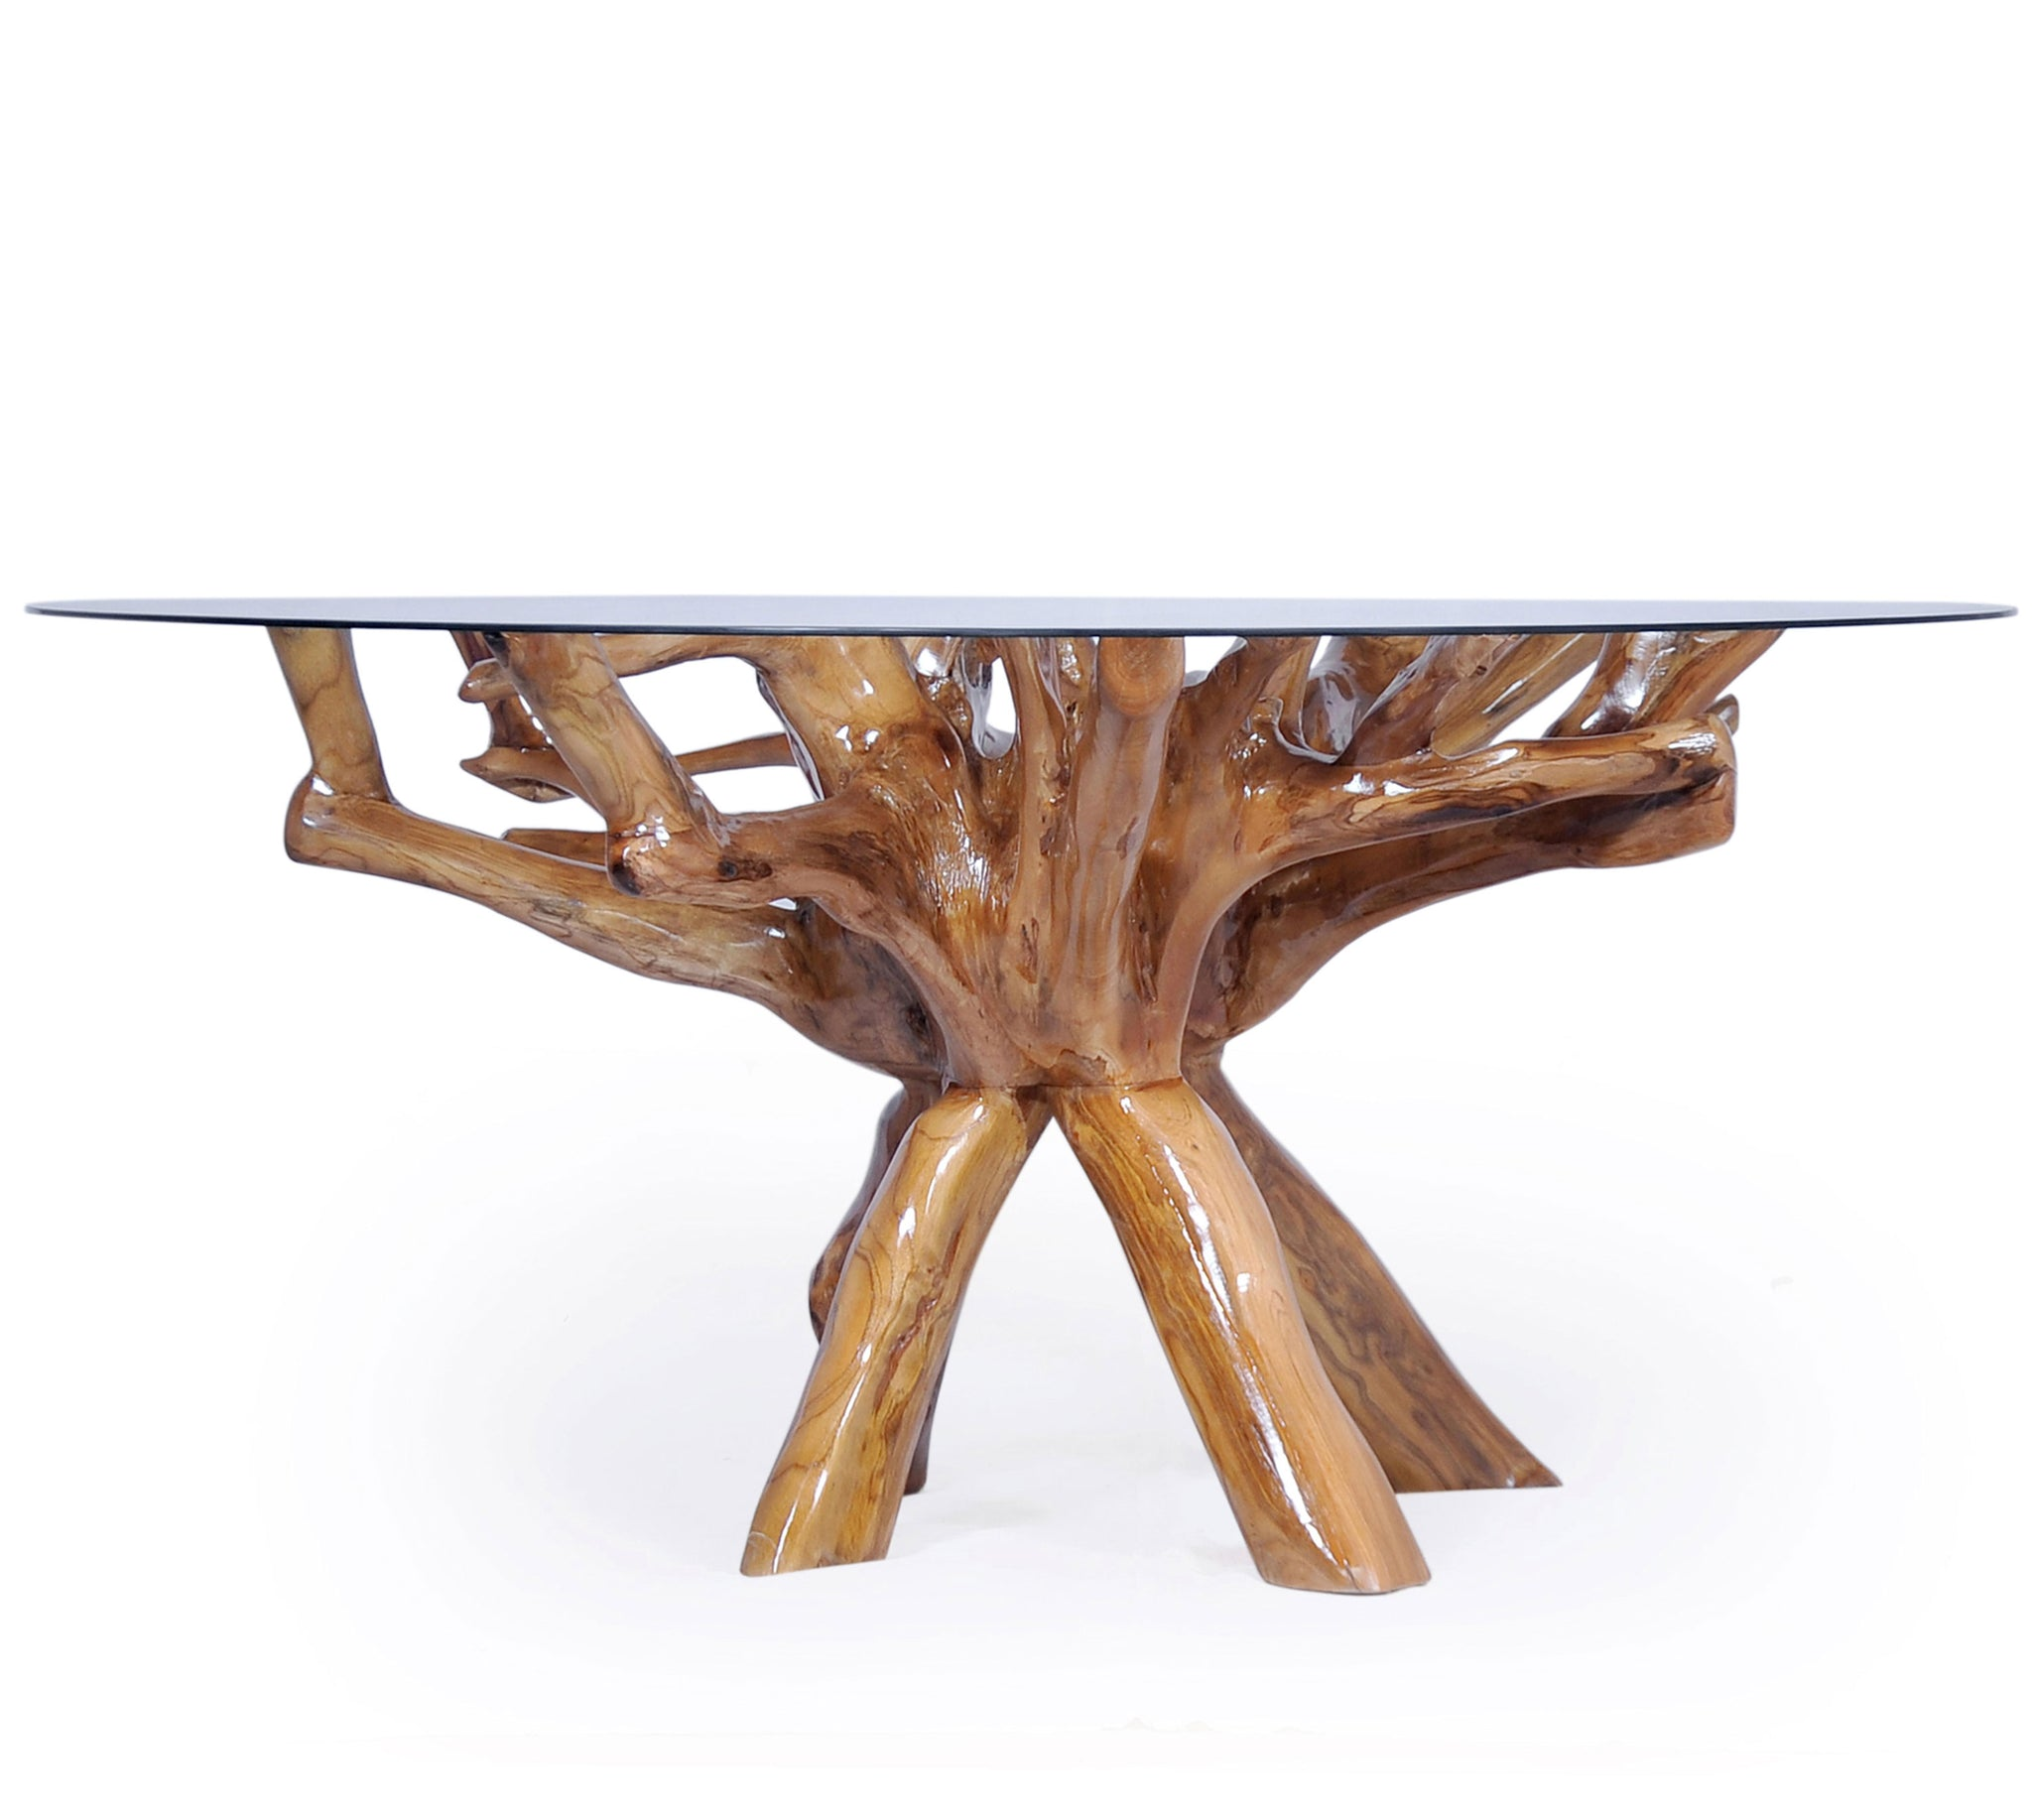 Teak Wood Root Dining Table Including A Round 48 Inch Glass Top La Place Usa Furniture Outlet